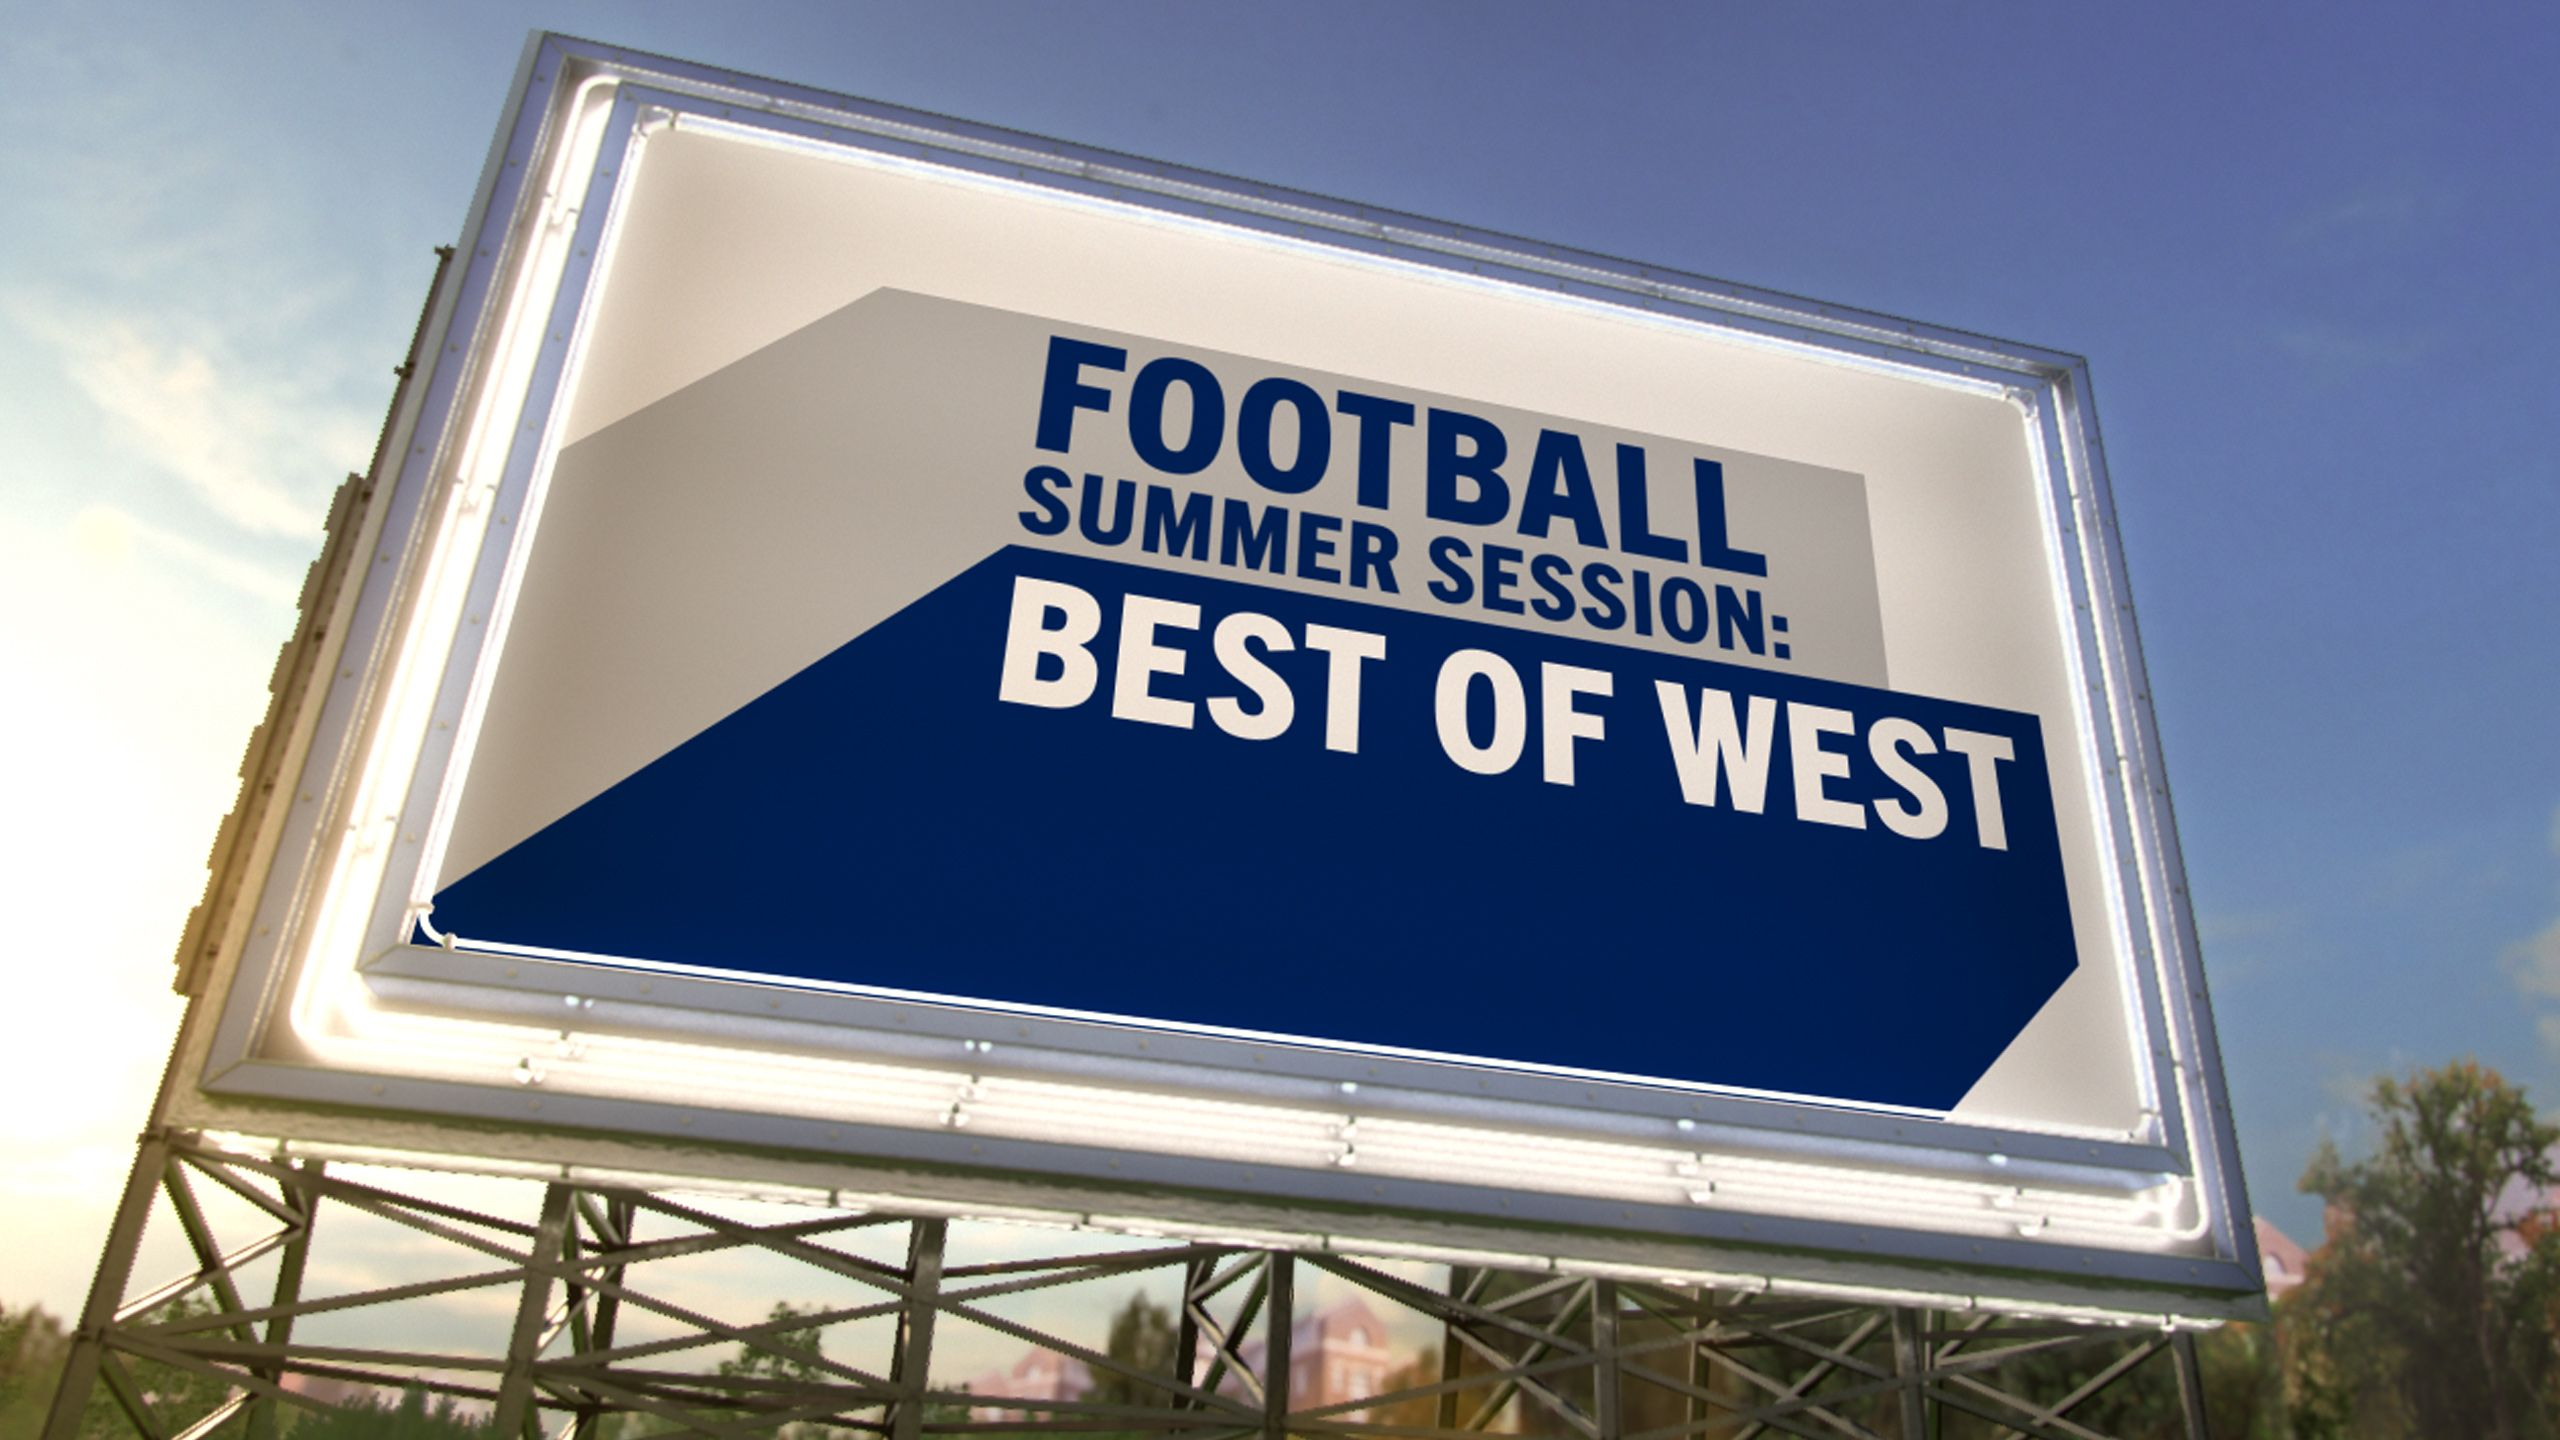 Football Summer Session: West Recap